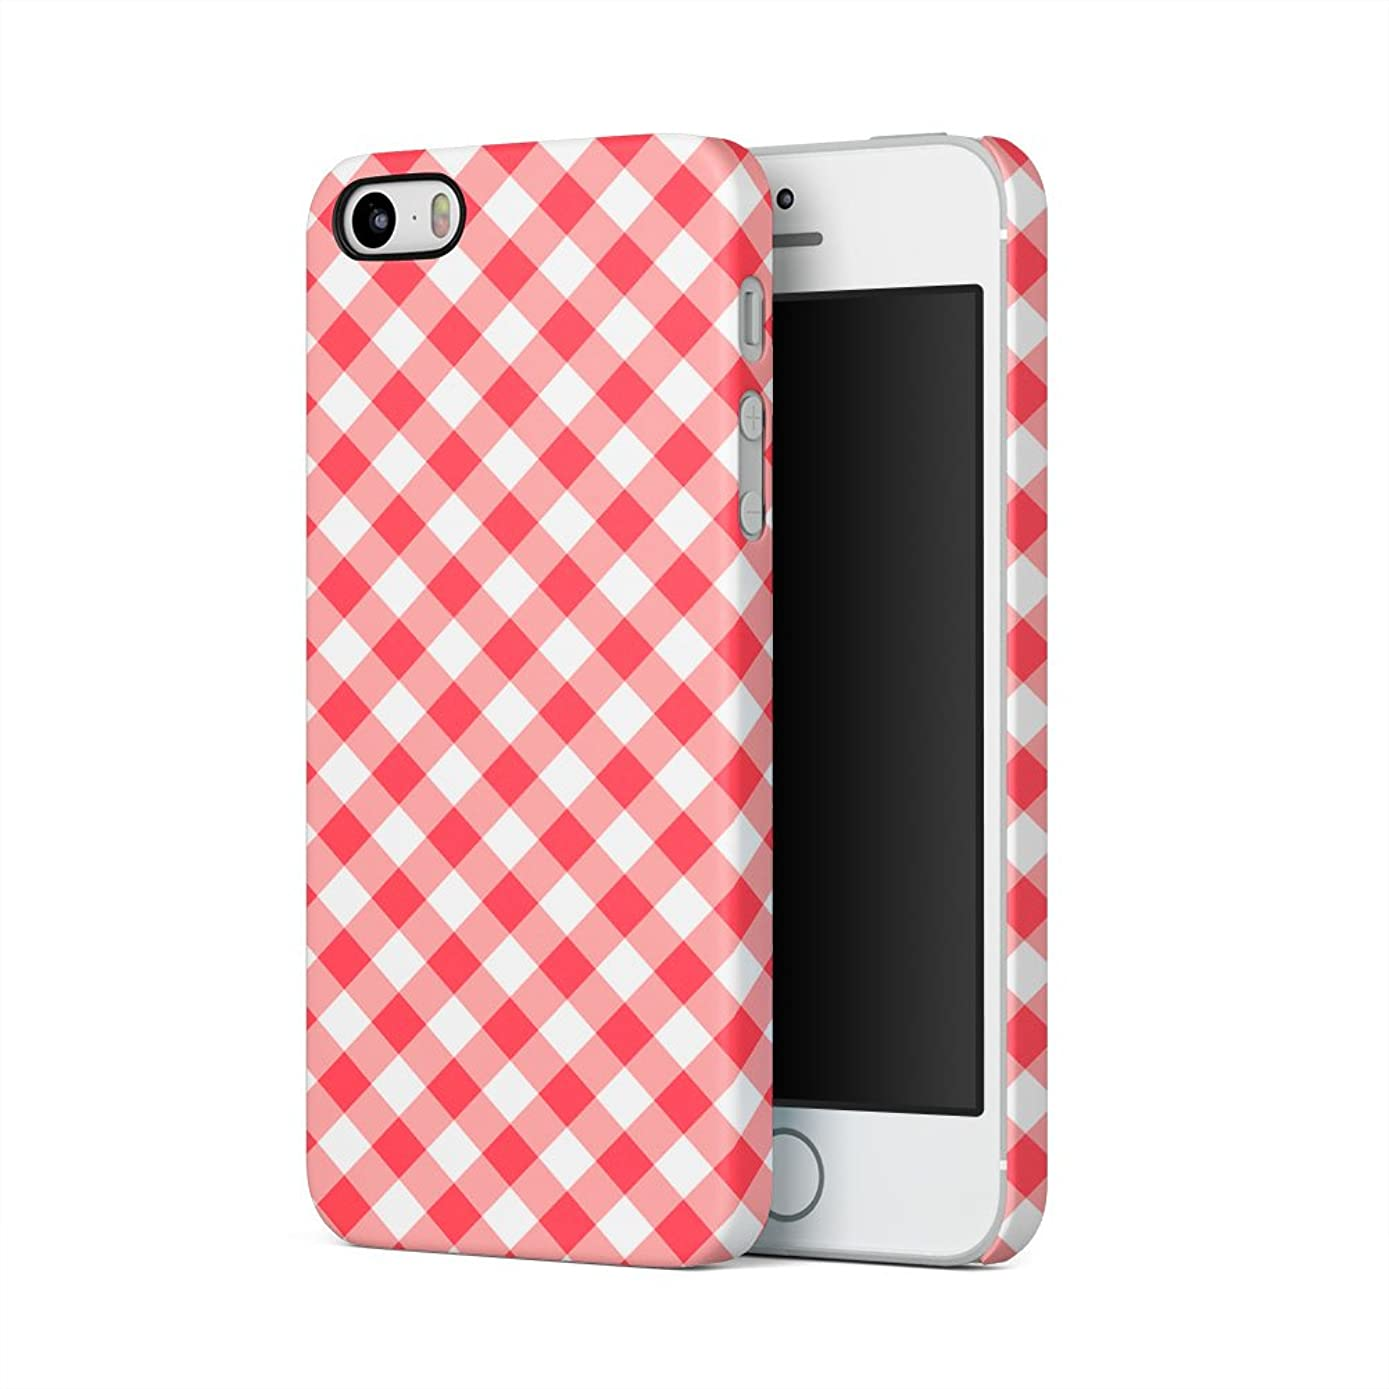 Red Vintage Checkered Tablecloth Pattern Apple iPhone 5, iPhone 5s, iPhone SE Plastic Phone Protective Case Cover